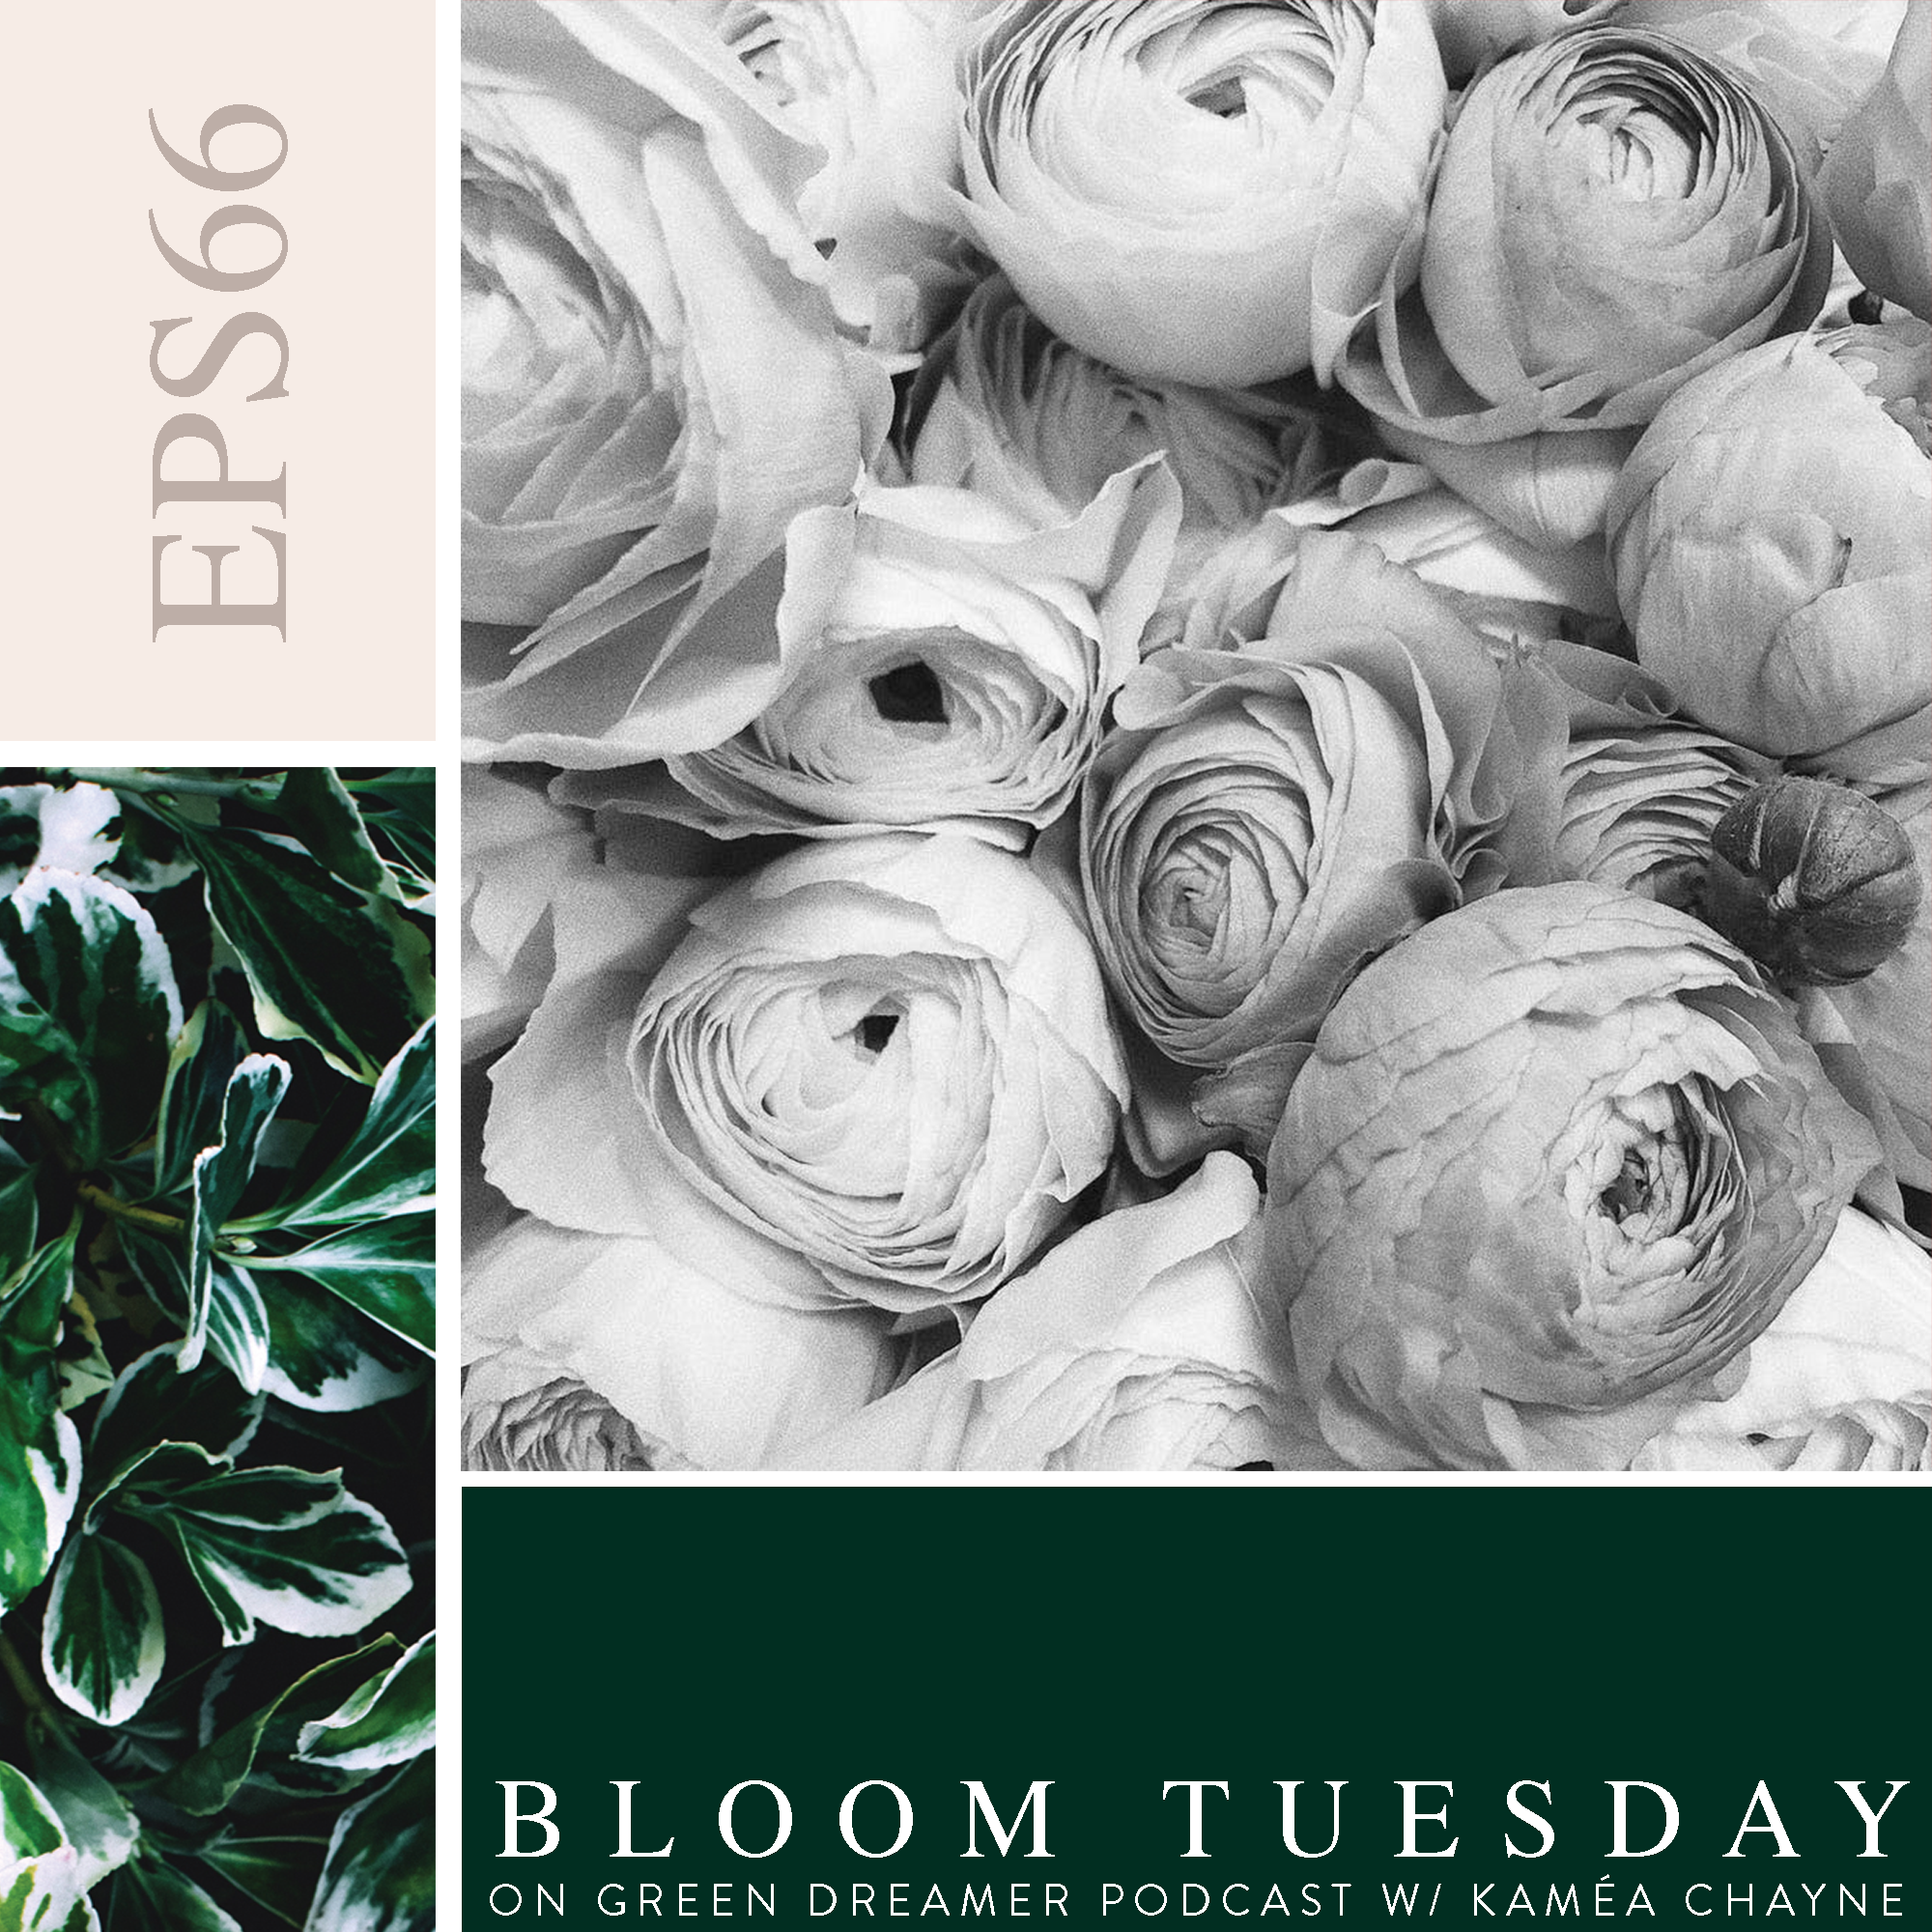 66) BLOOM TUESDAY